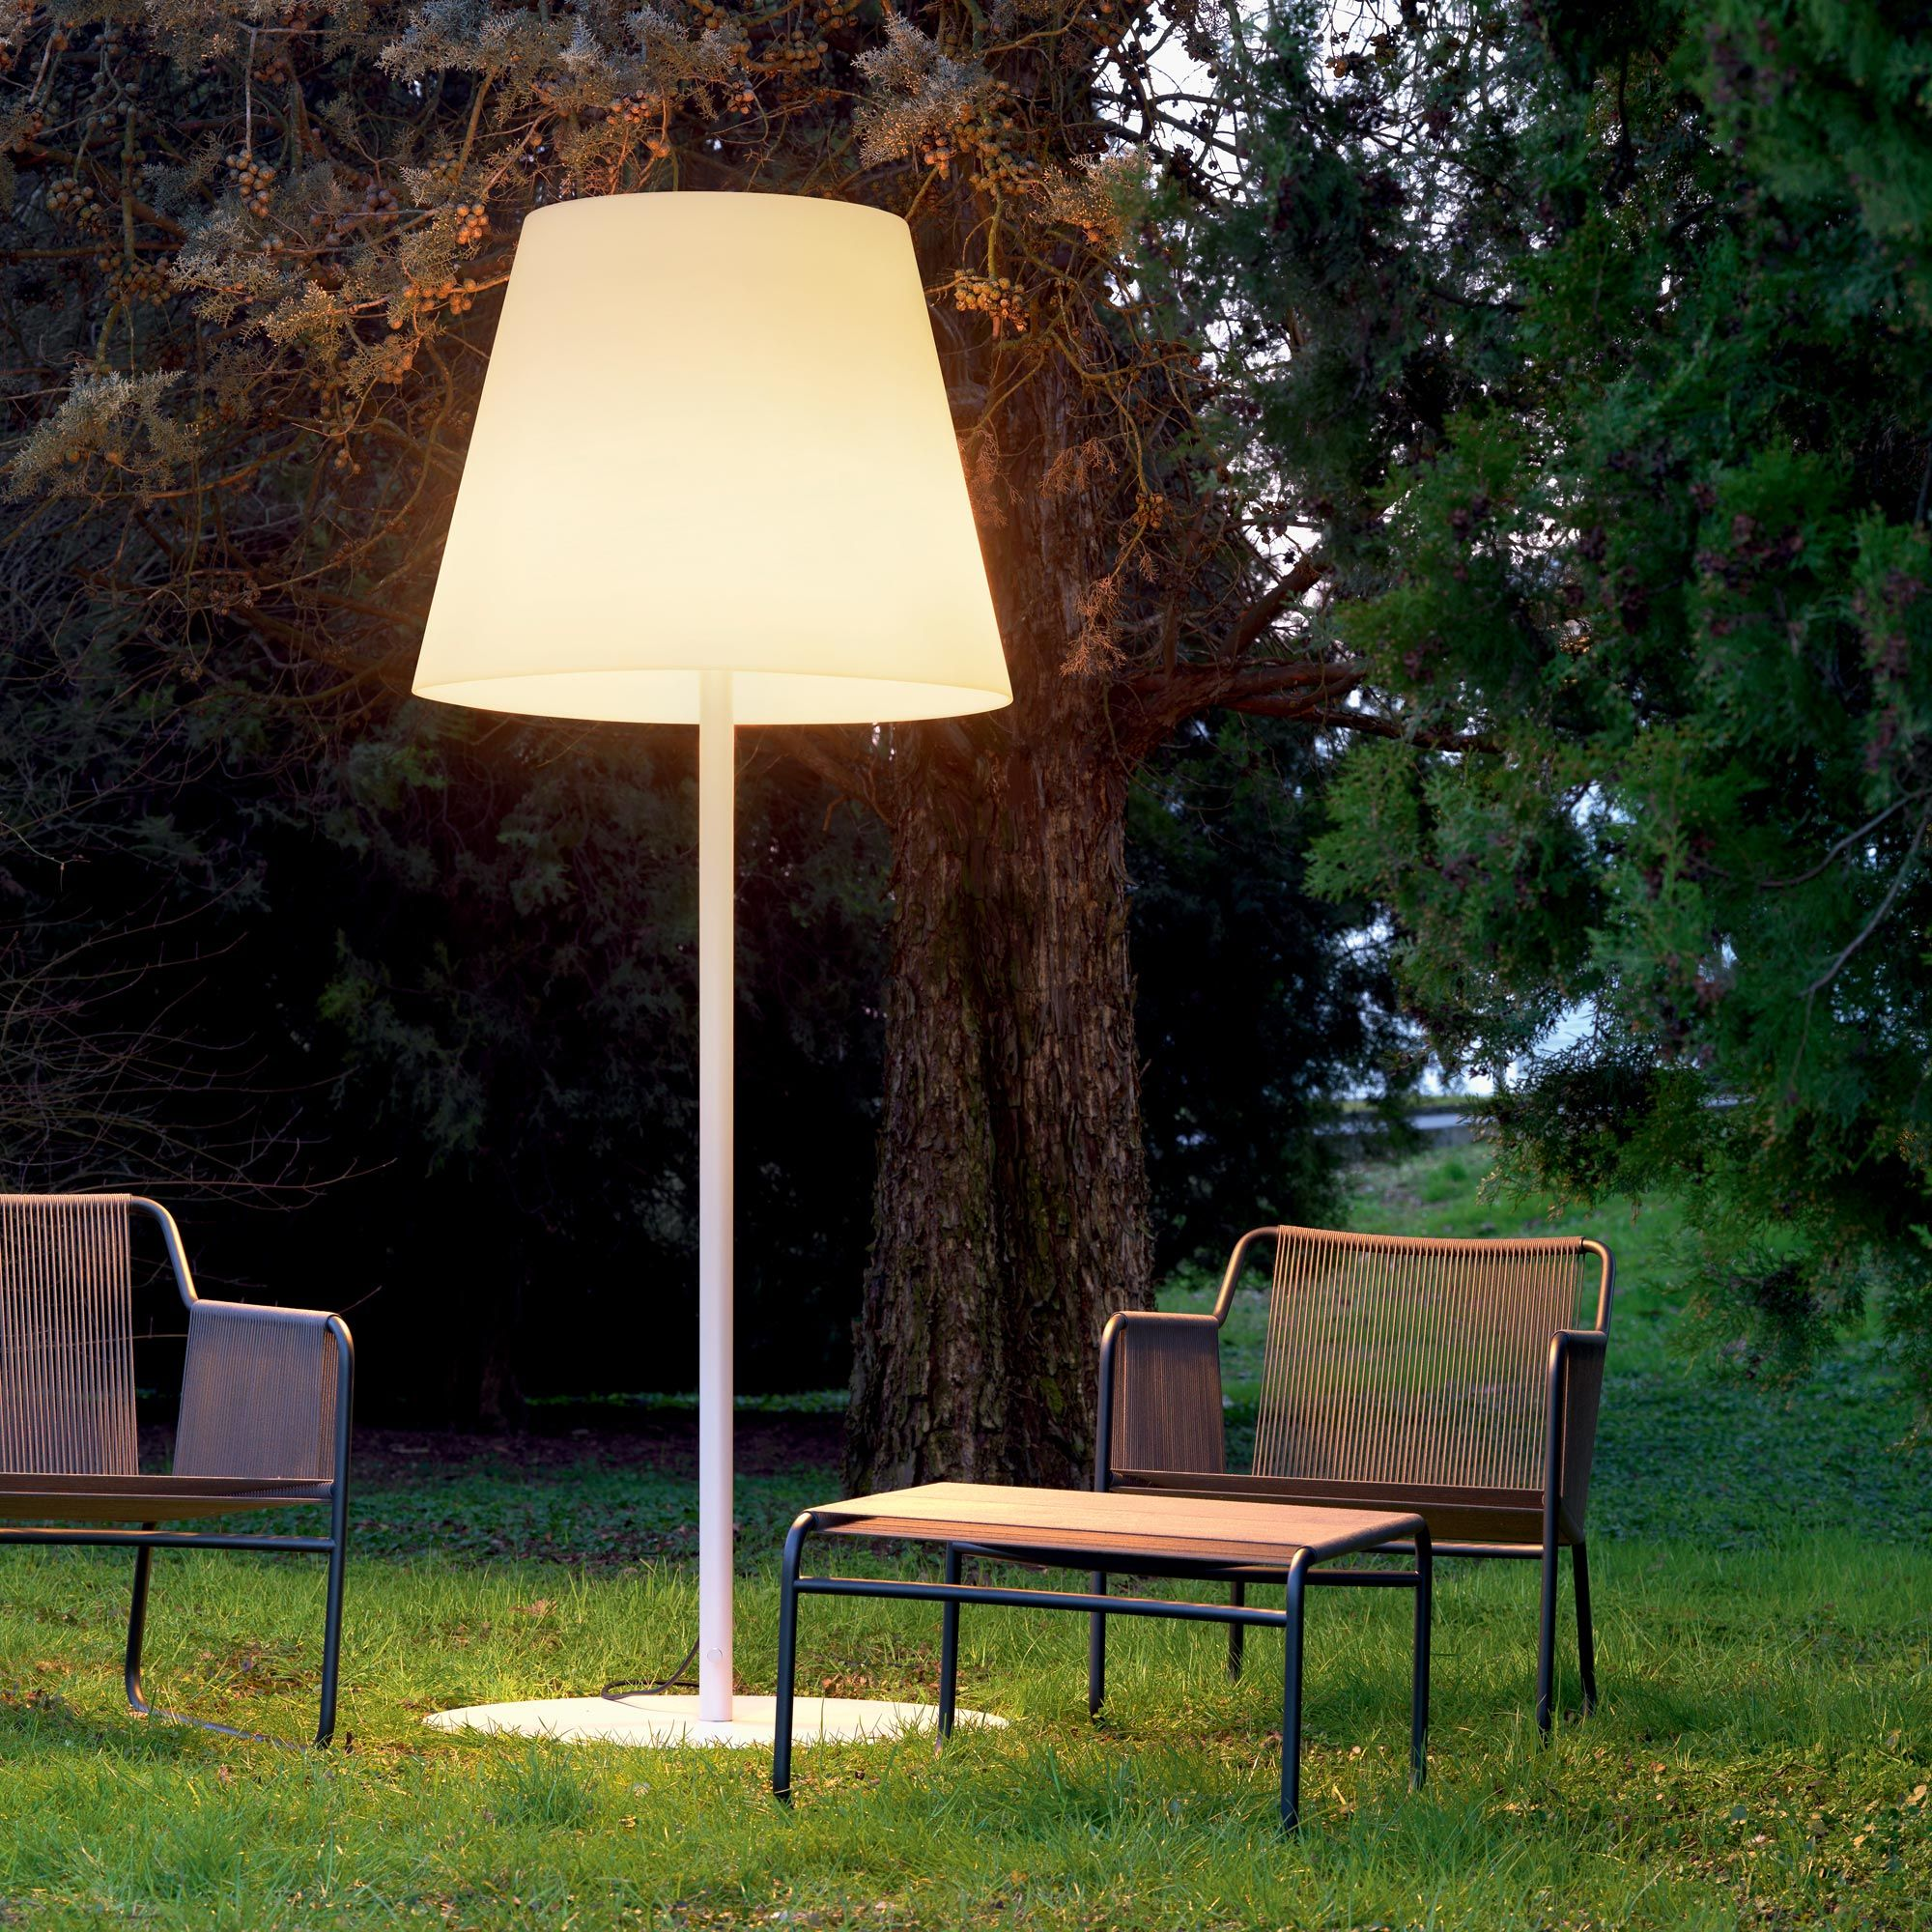 Outdoor Lamps Big Outdoor Lamp With A Translucent White Polyethylene Diffuser